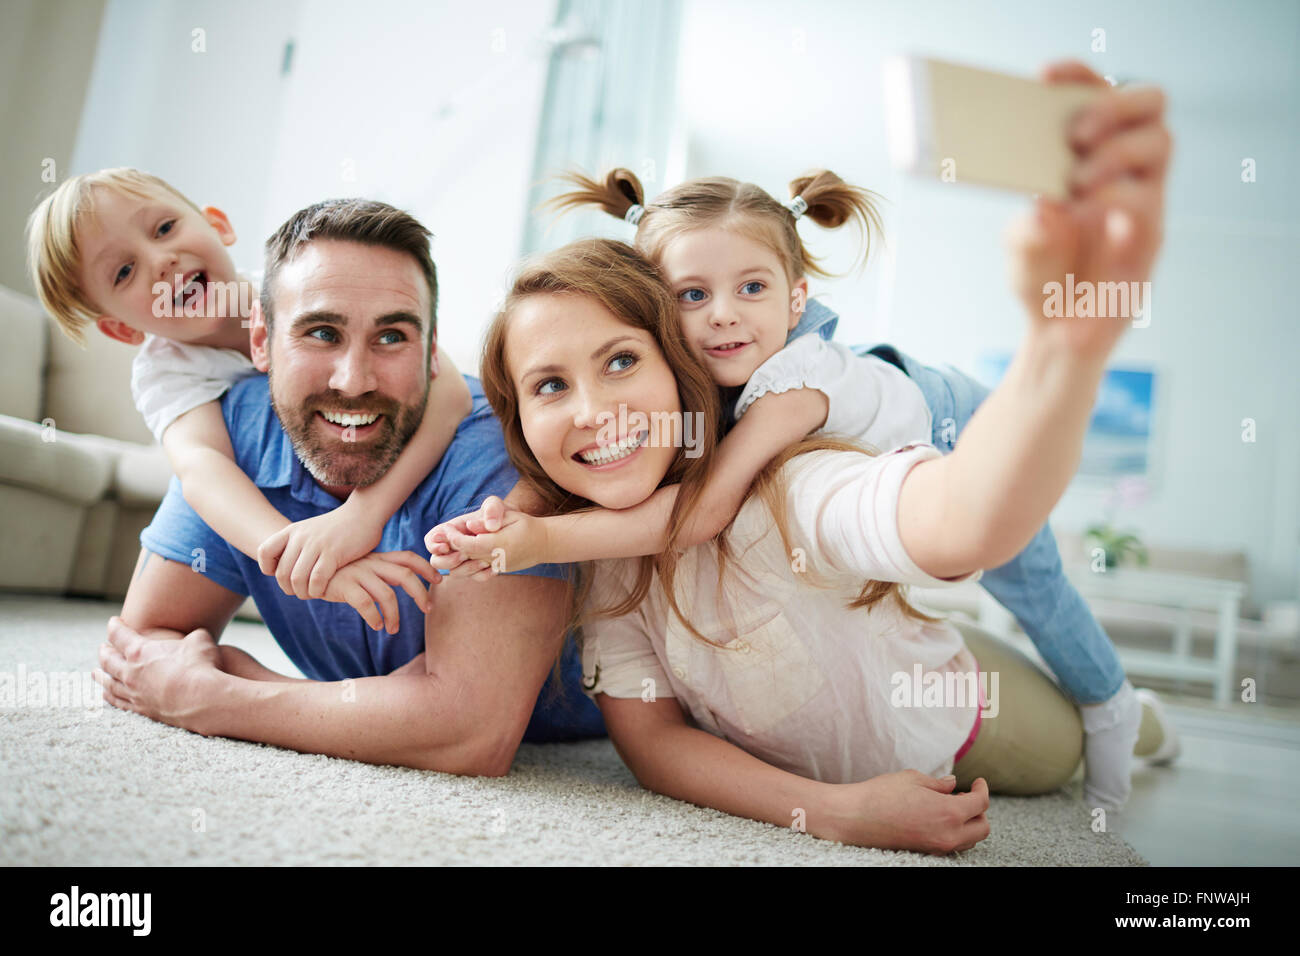 Happy young family taking selfie on the floor at home - Stock Image